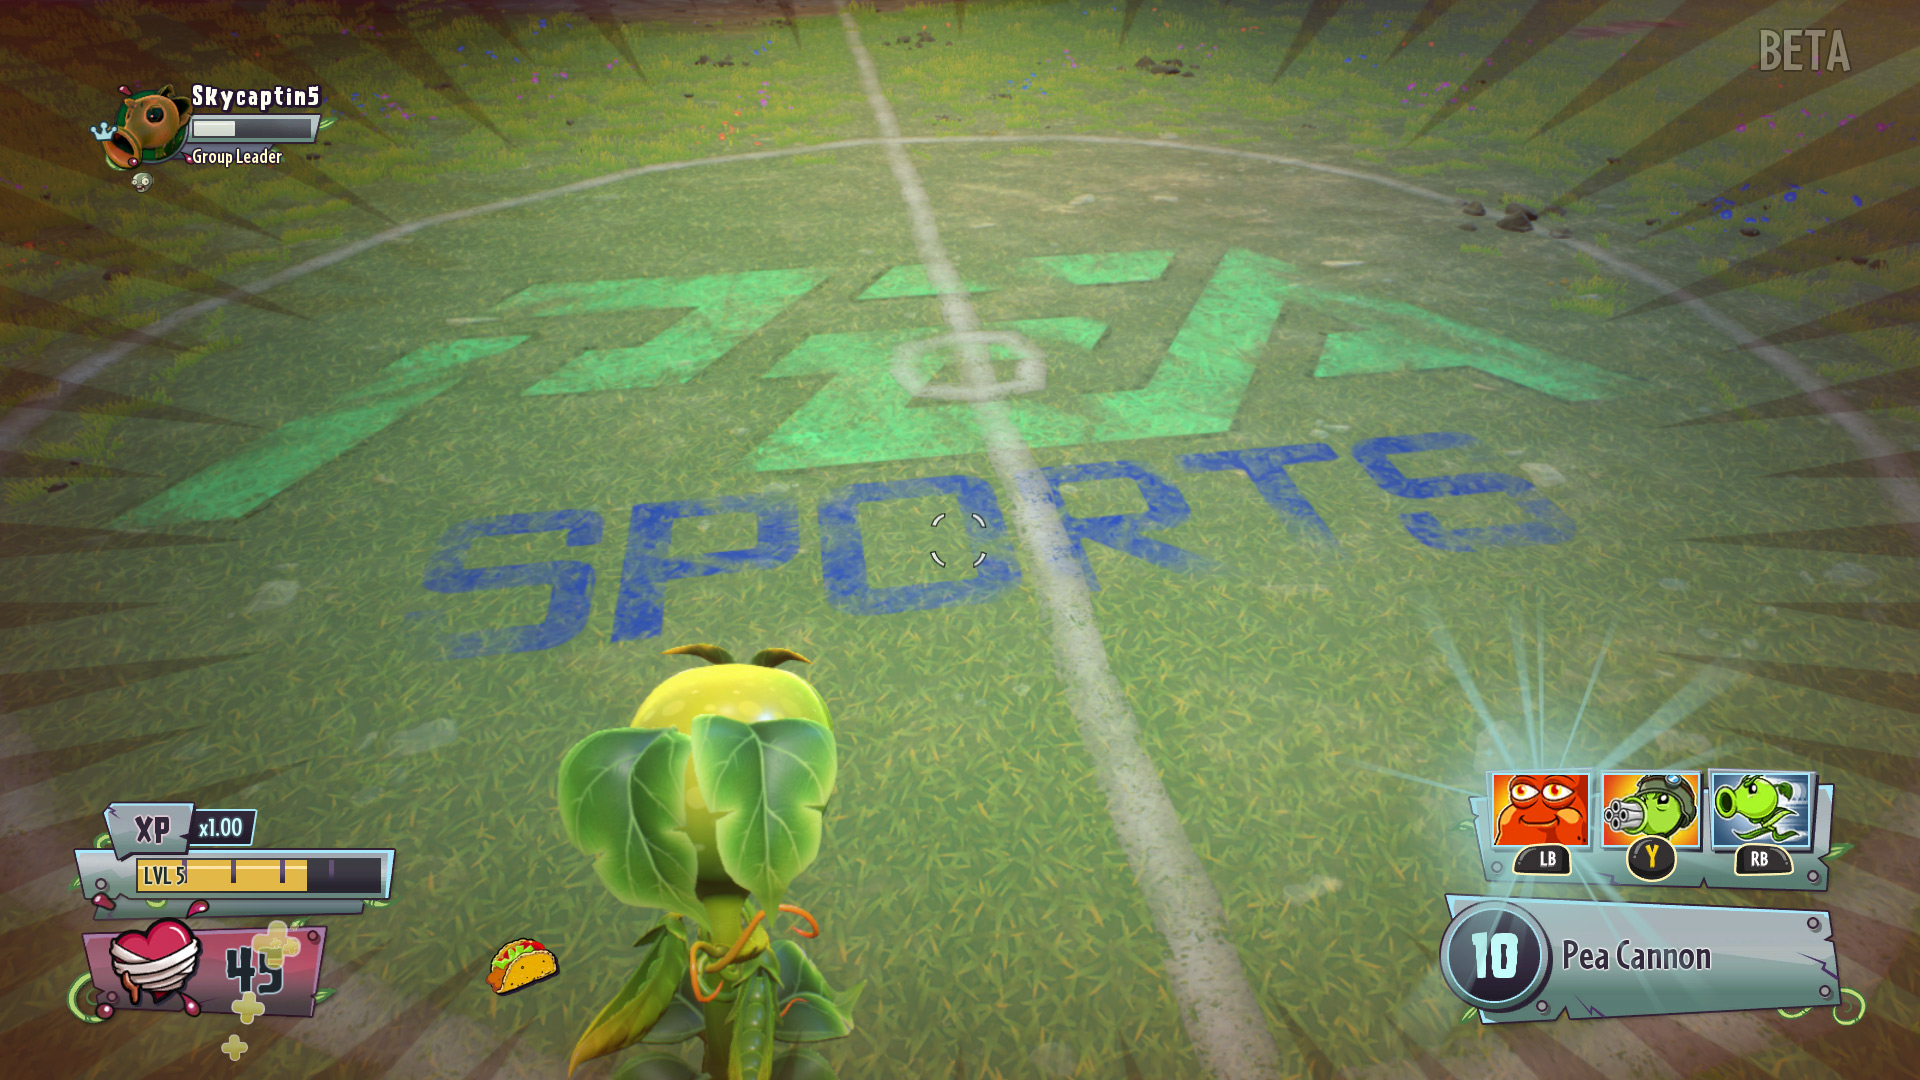 plants vs zombies garden warfare 2 easter eggs - Pictures Of Easter Eggs 2